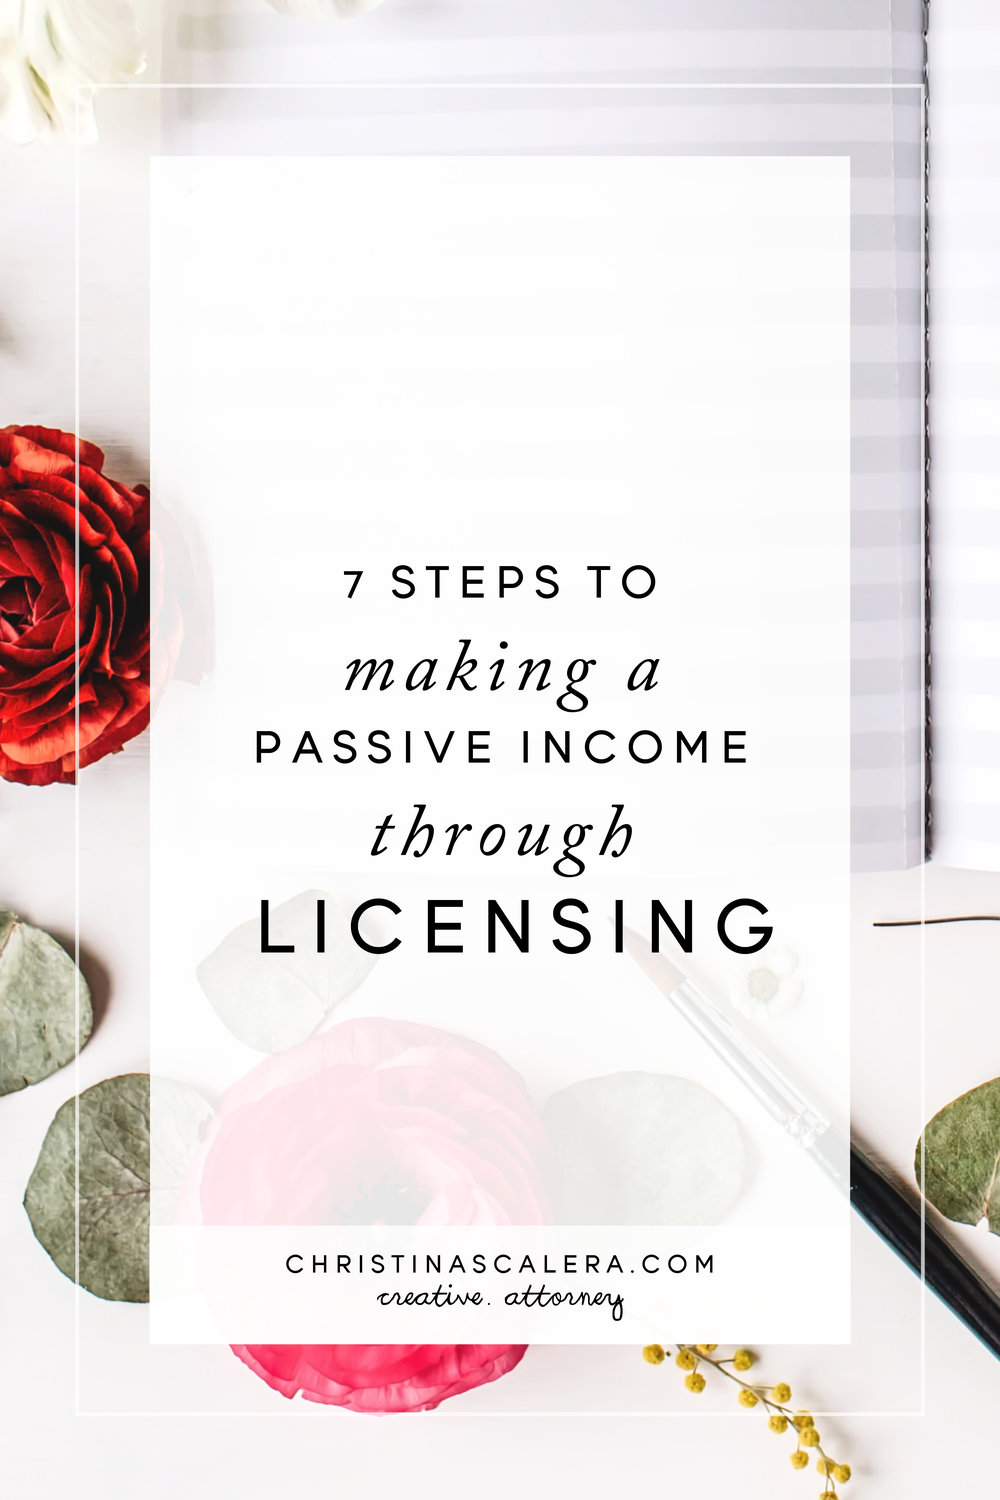 Steps to making a passive income through licensing. FREE PRINTABLE INCLUDED!